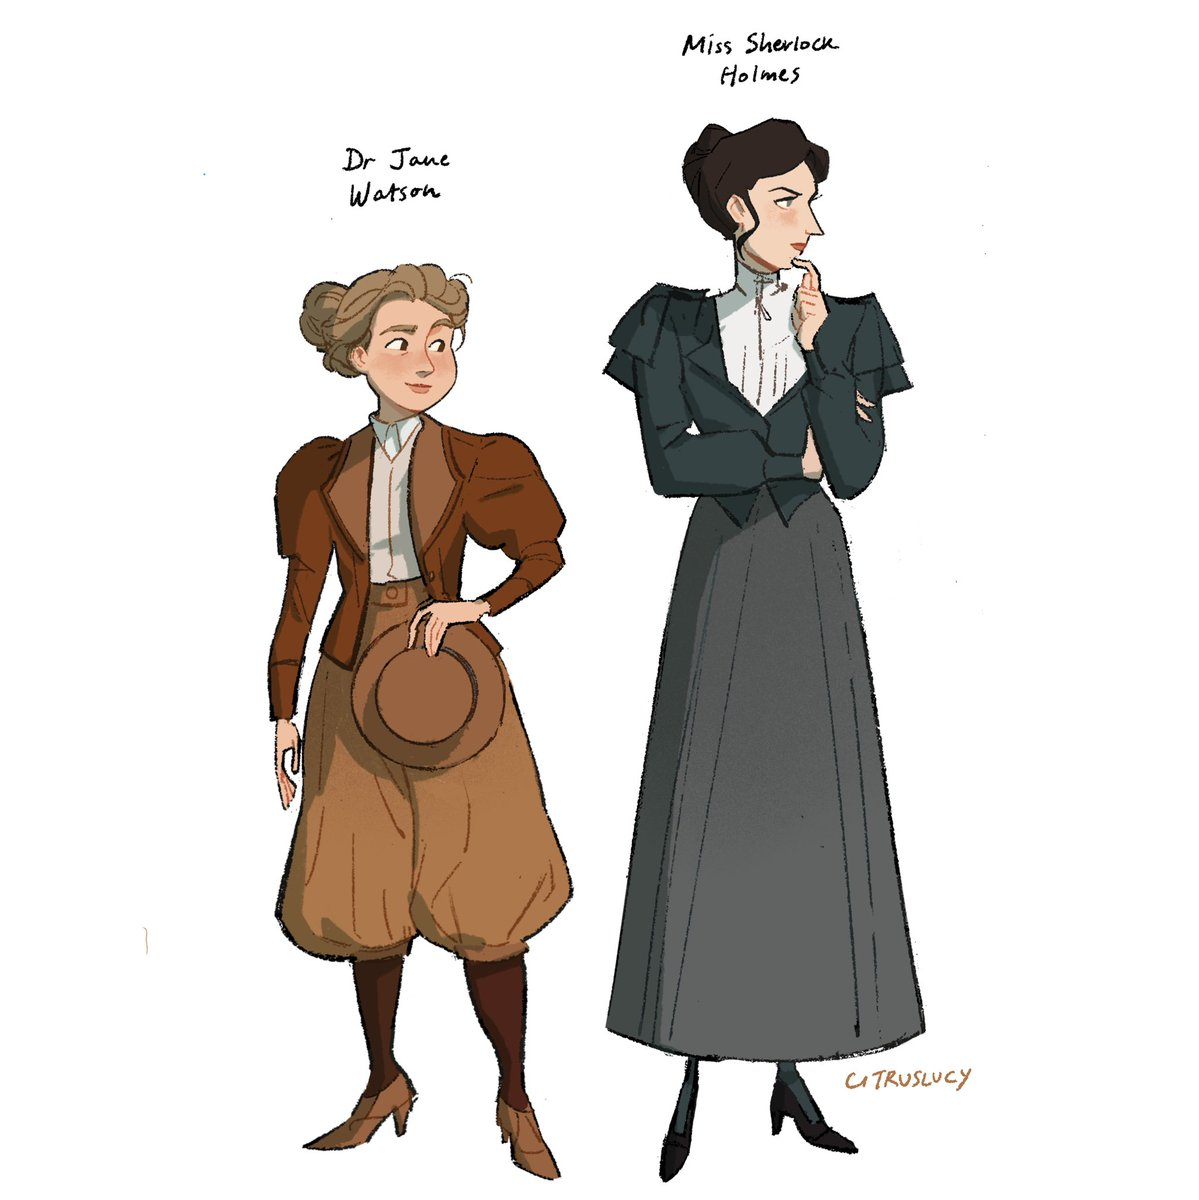 RT @citruslucy: my take on sherlock holmes and dr watson for a personal project 🕵️♀️ https://t.co/MZr1cwzqLw